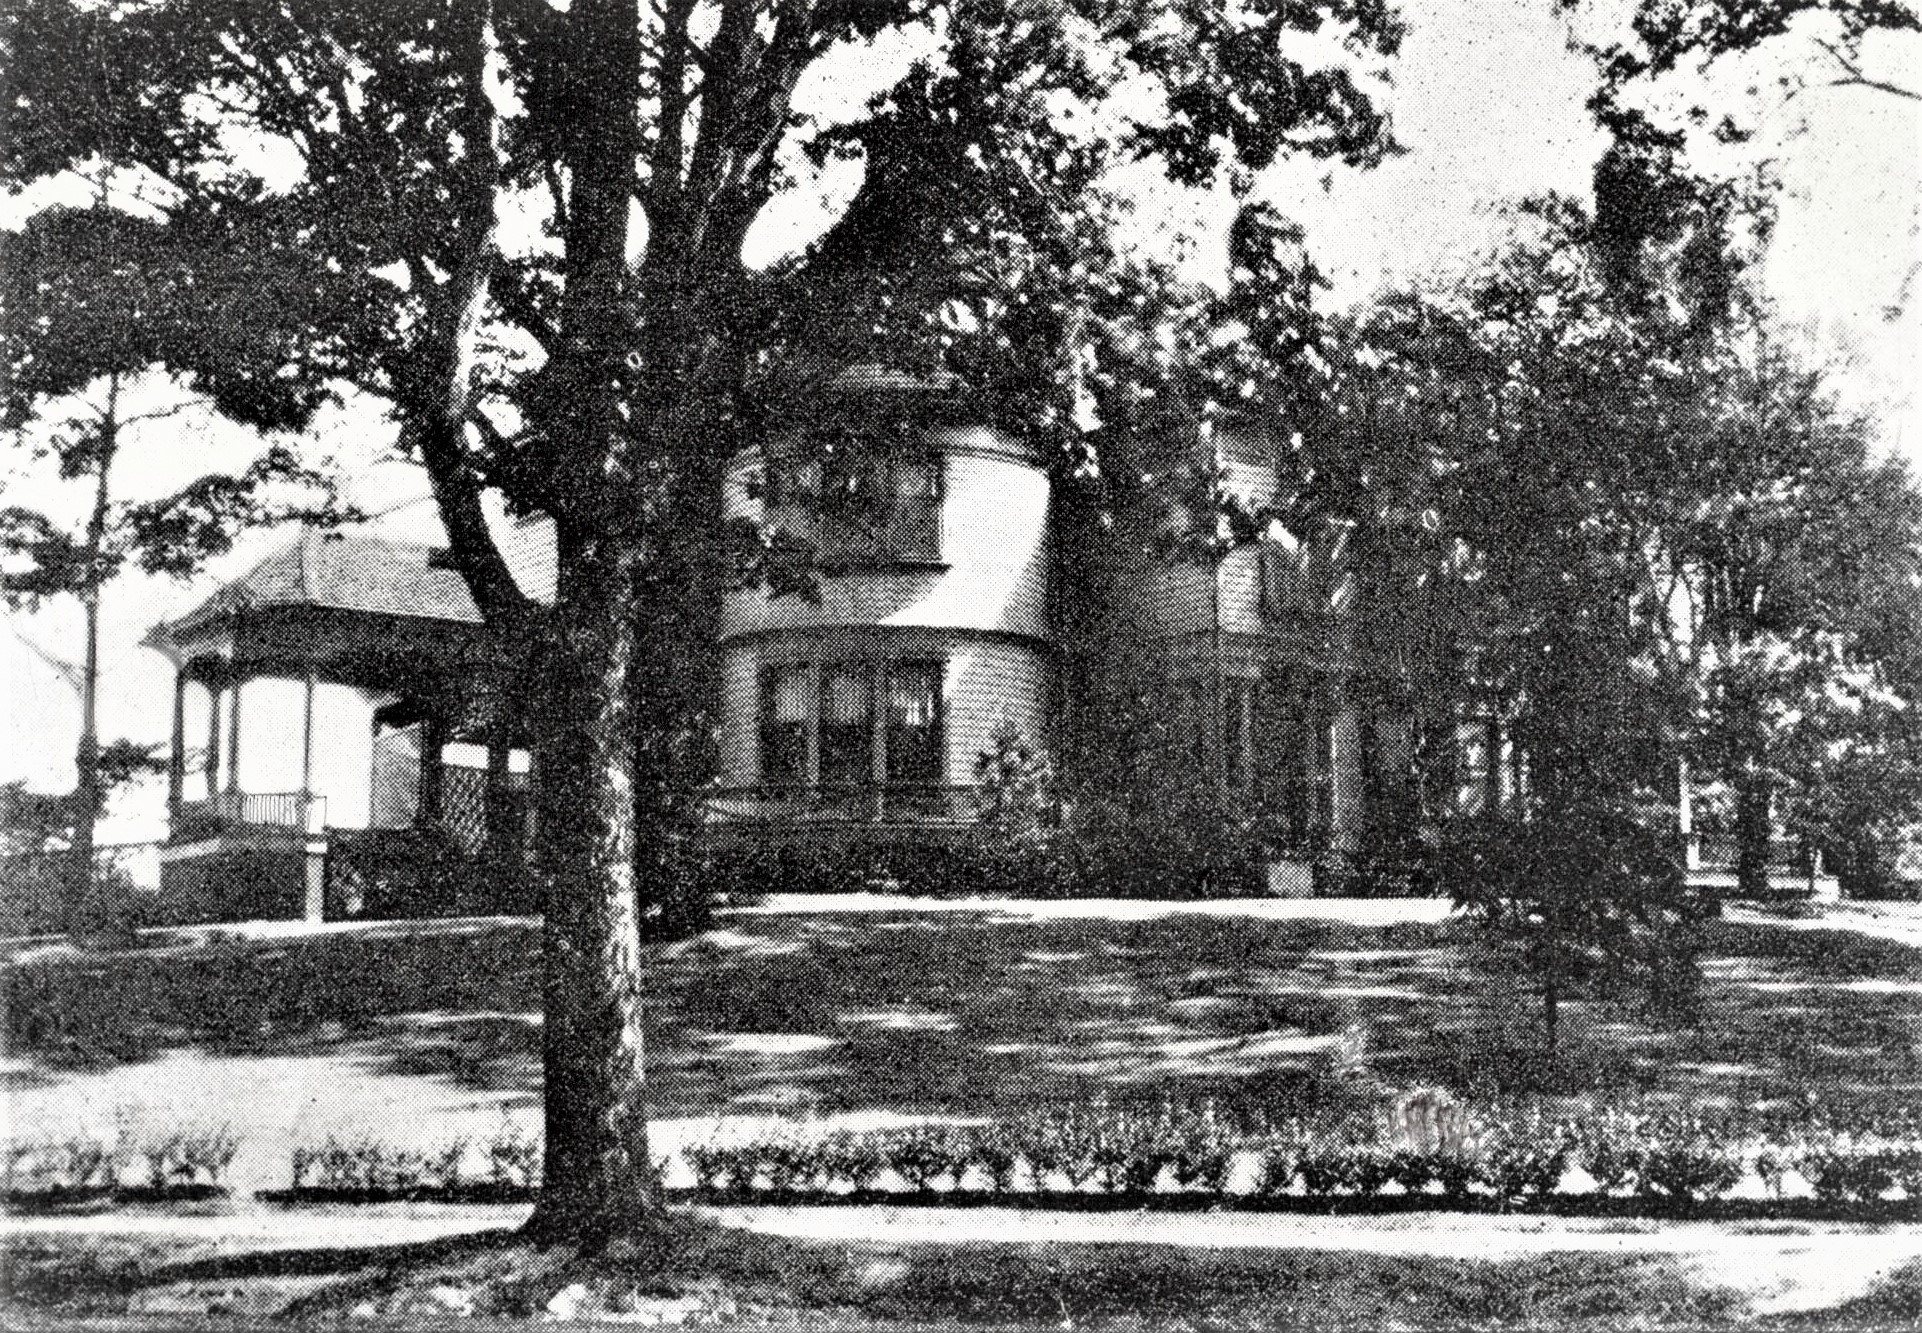 First House at 63 New England Ave.